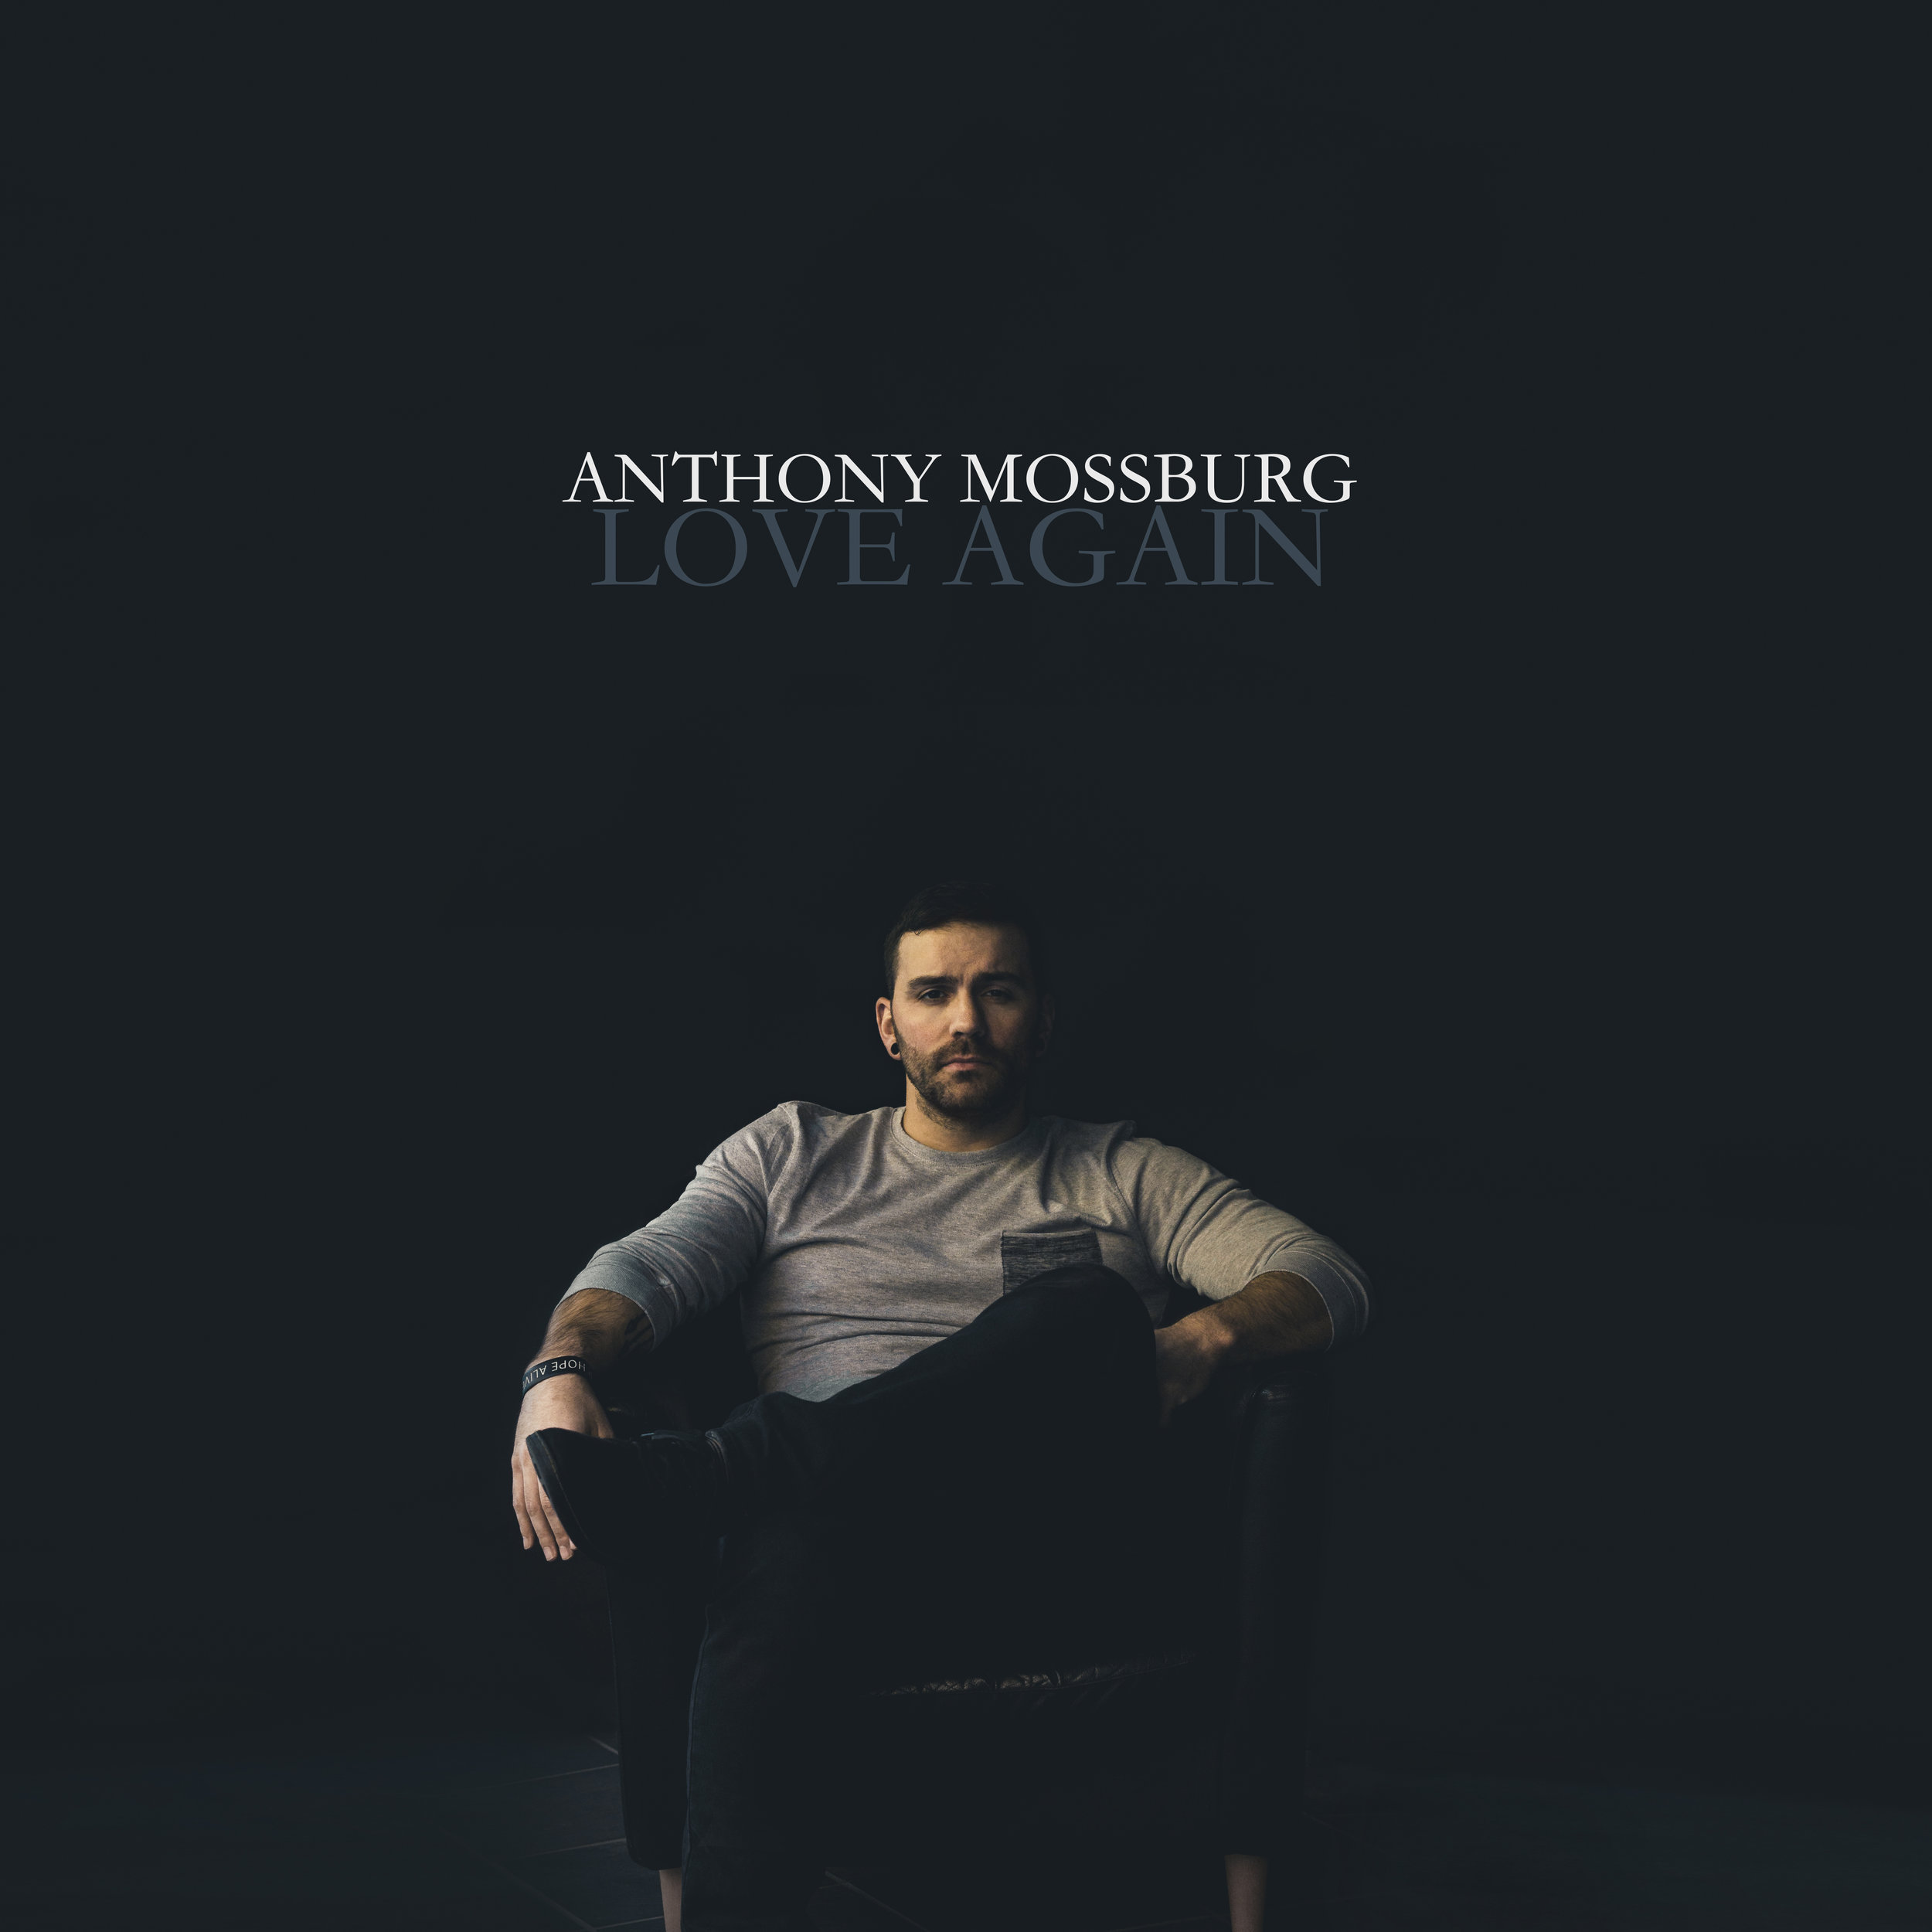 Single - Love Again 2018  Anthony Mossburg  CLICK TO BUY ON ITUNES